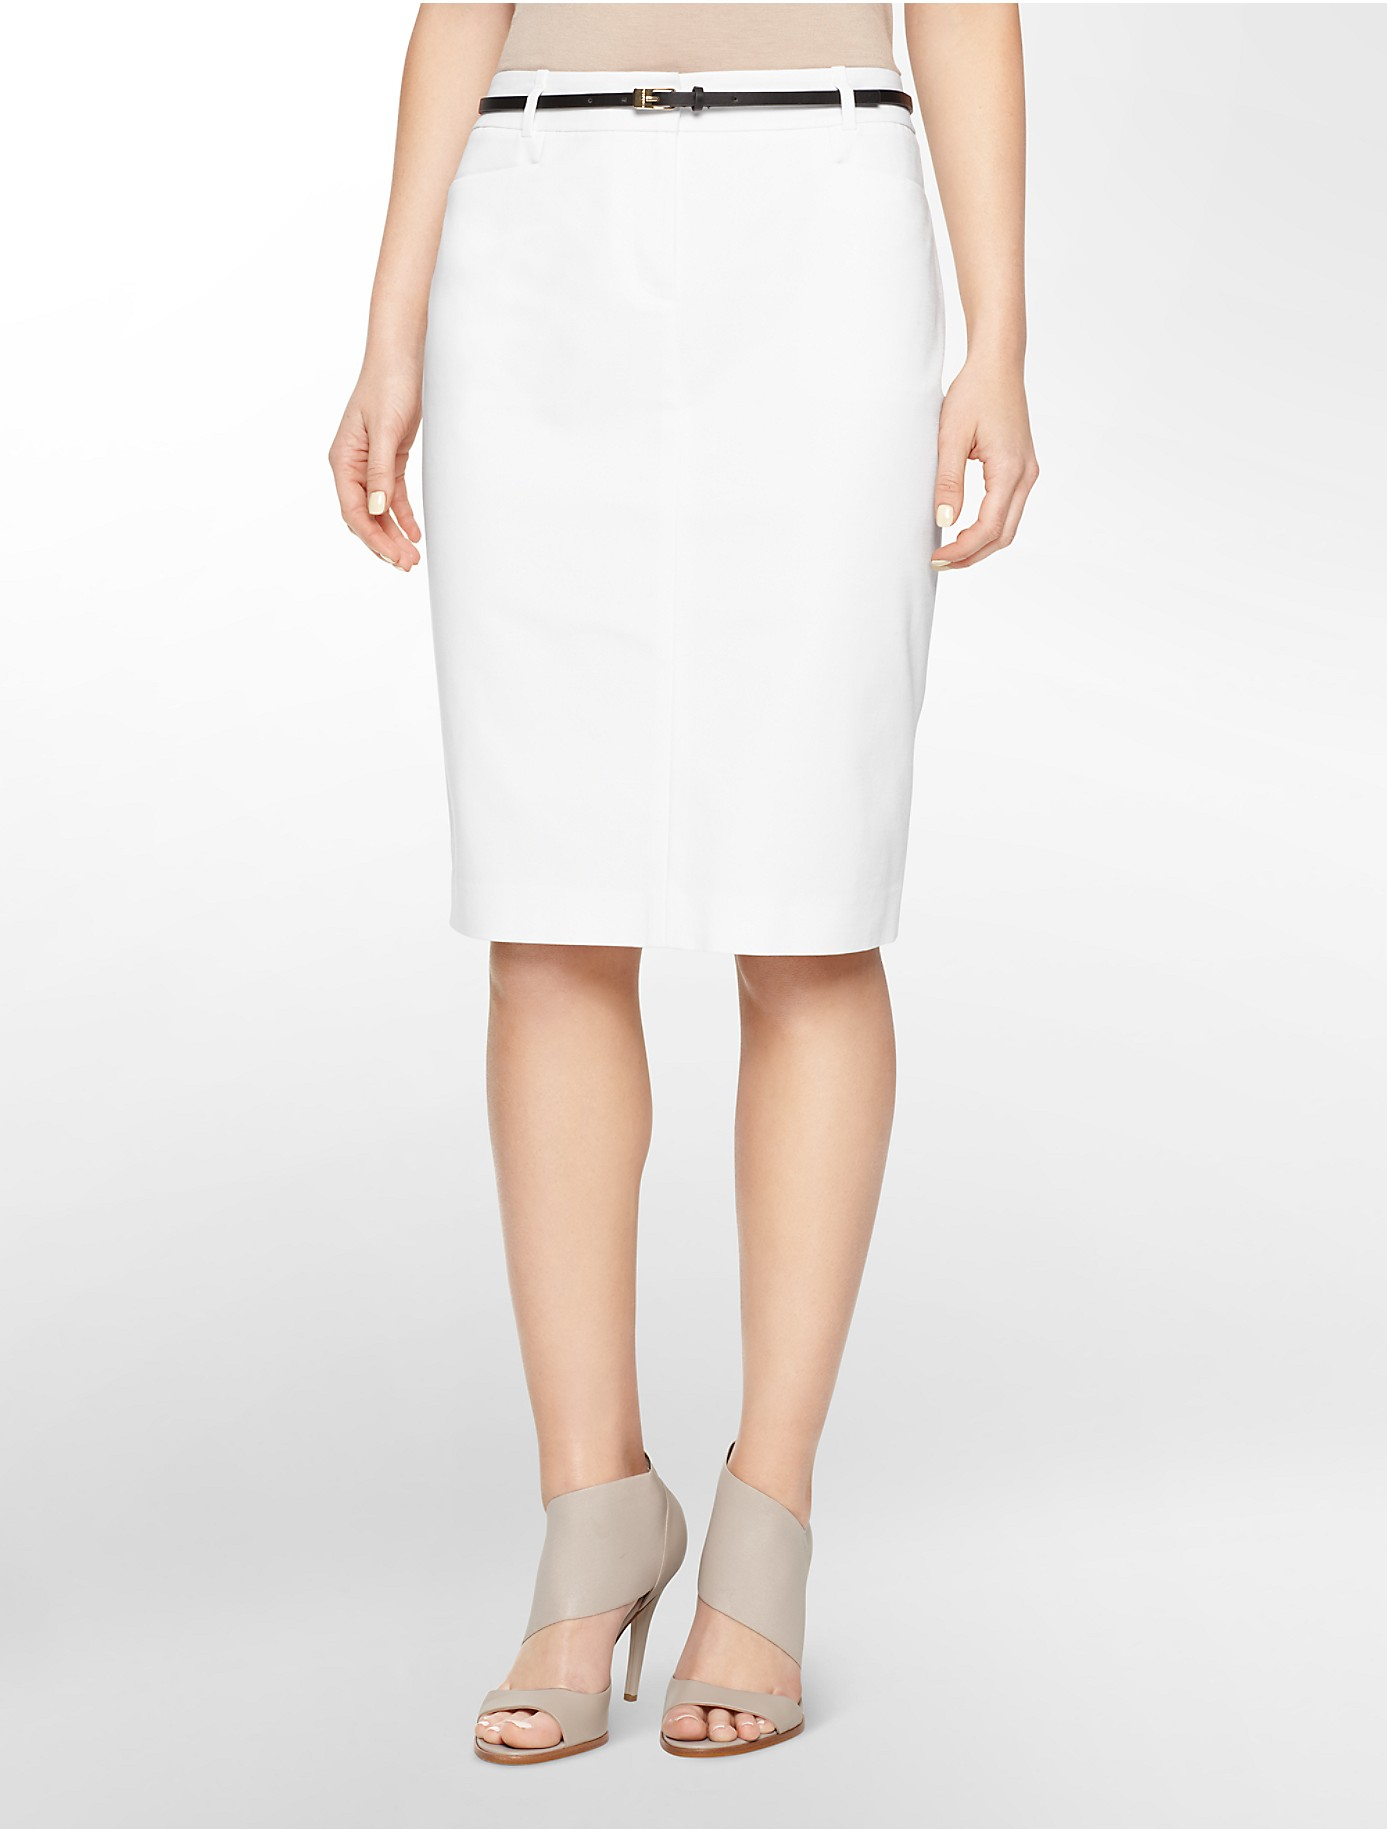 Calvin klein White Label Textured Belted Cotton Blend Pencil Skirt ...